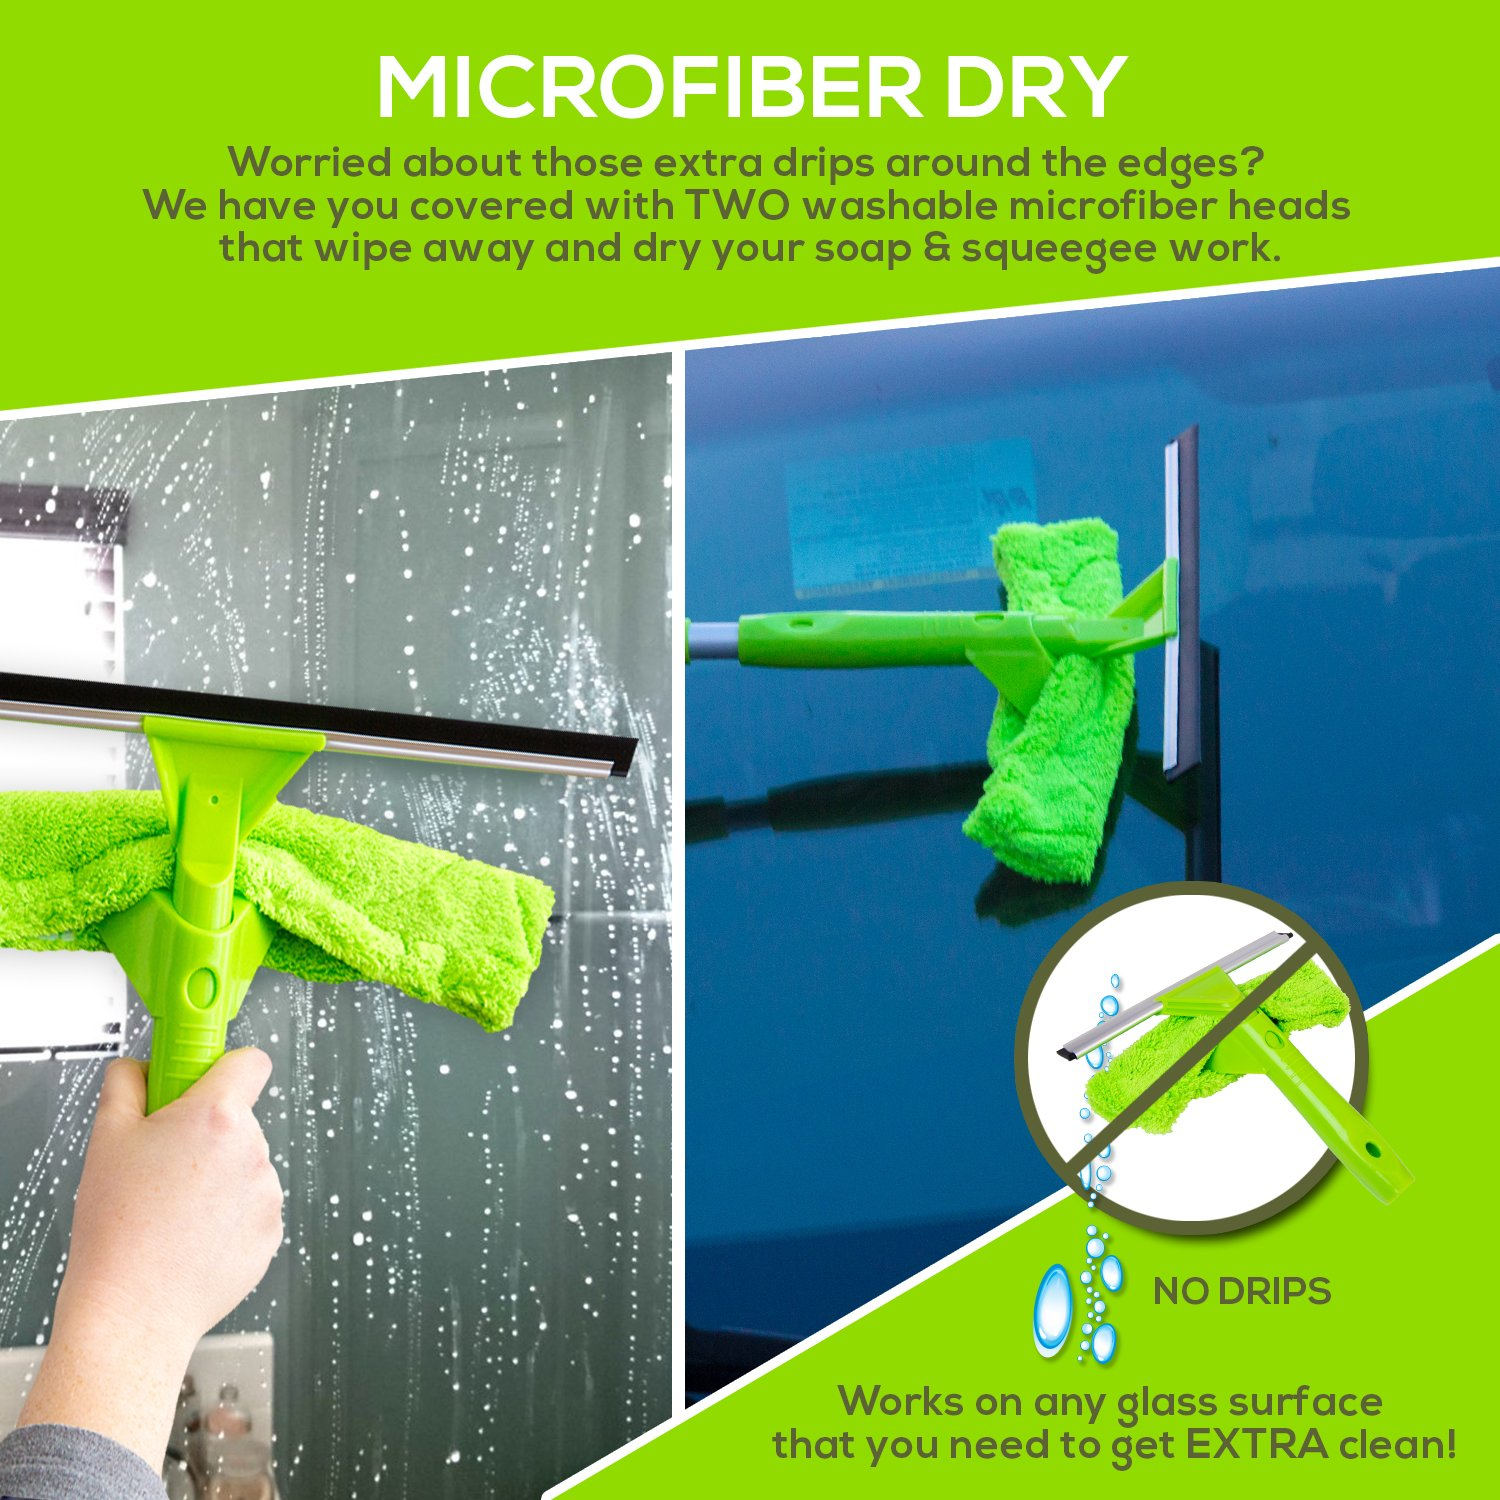 NeverEnding Reach Squeegee Window Cleaner Kit | Shower Squeegee, High Window Cleaning Tools, Car Windshield Tool and Doors - Indoor / Outdoor Washing Equipment with Extension Pole and 4 Washer Heads by Modern Domus (Image #9)